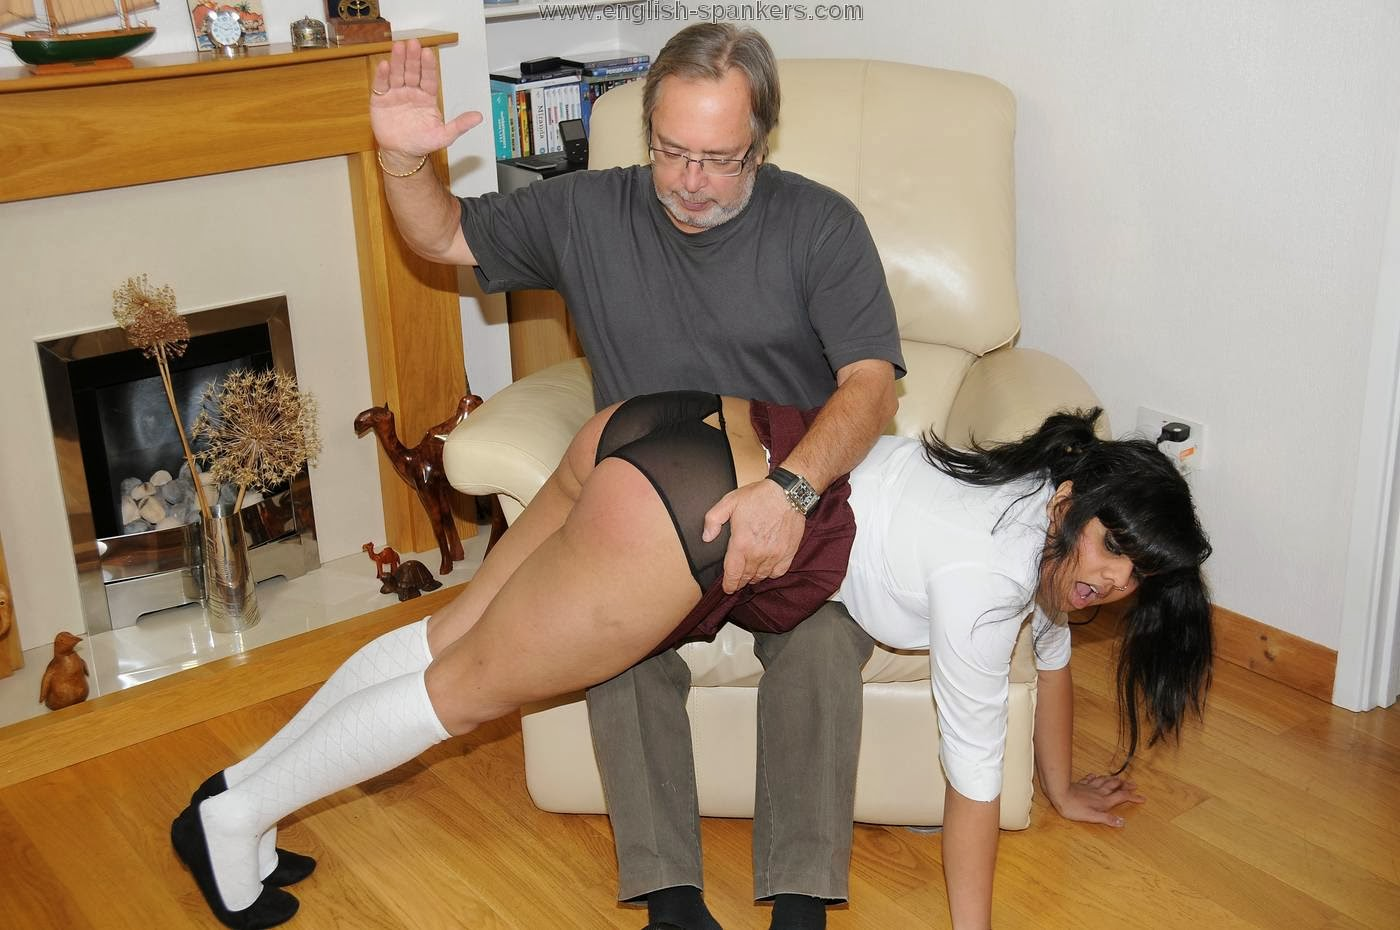 New girl punished by butler and anal whore